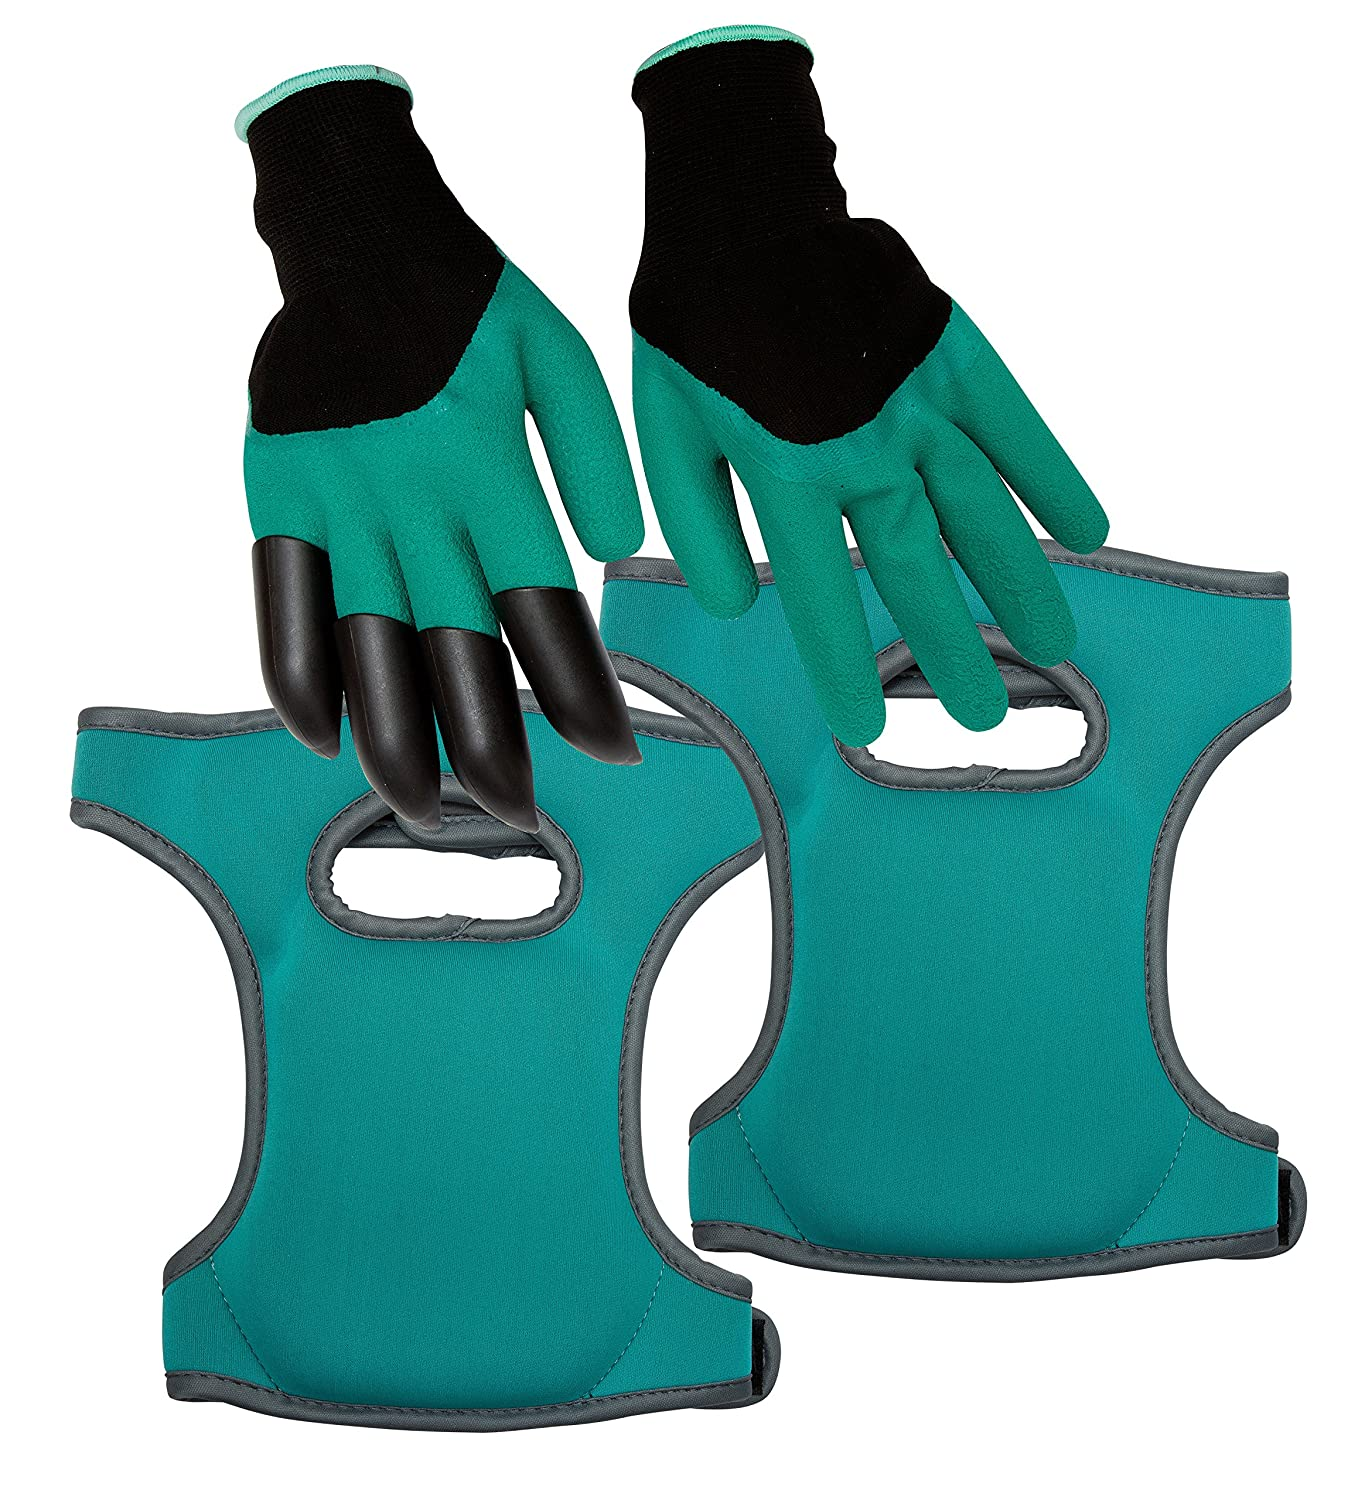 Homekit Gardening Knee Pads and Gardening Gloves Set – Incudes Finger Claws for Easy Digging by Allkit